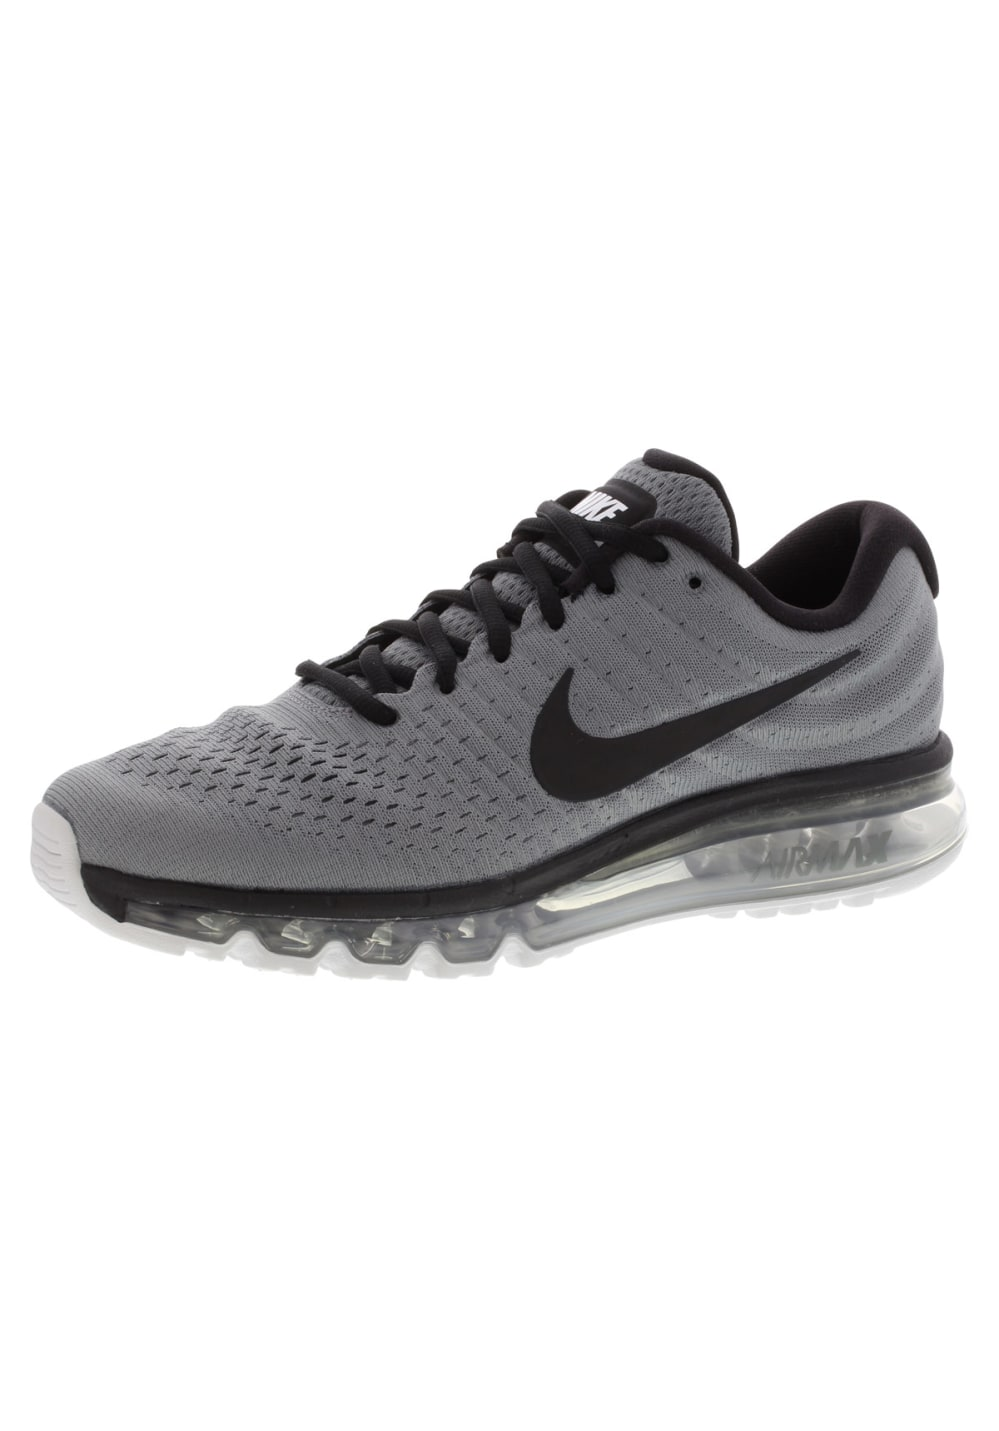 meilleures baskets e014a 4880f Nike Air Max 2017 - Chaussures running pour Homme - Gris